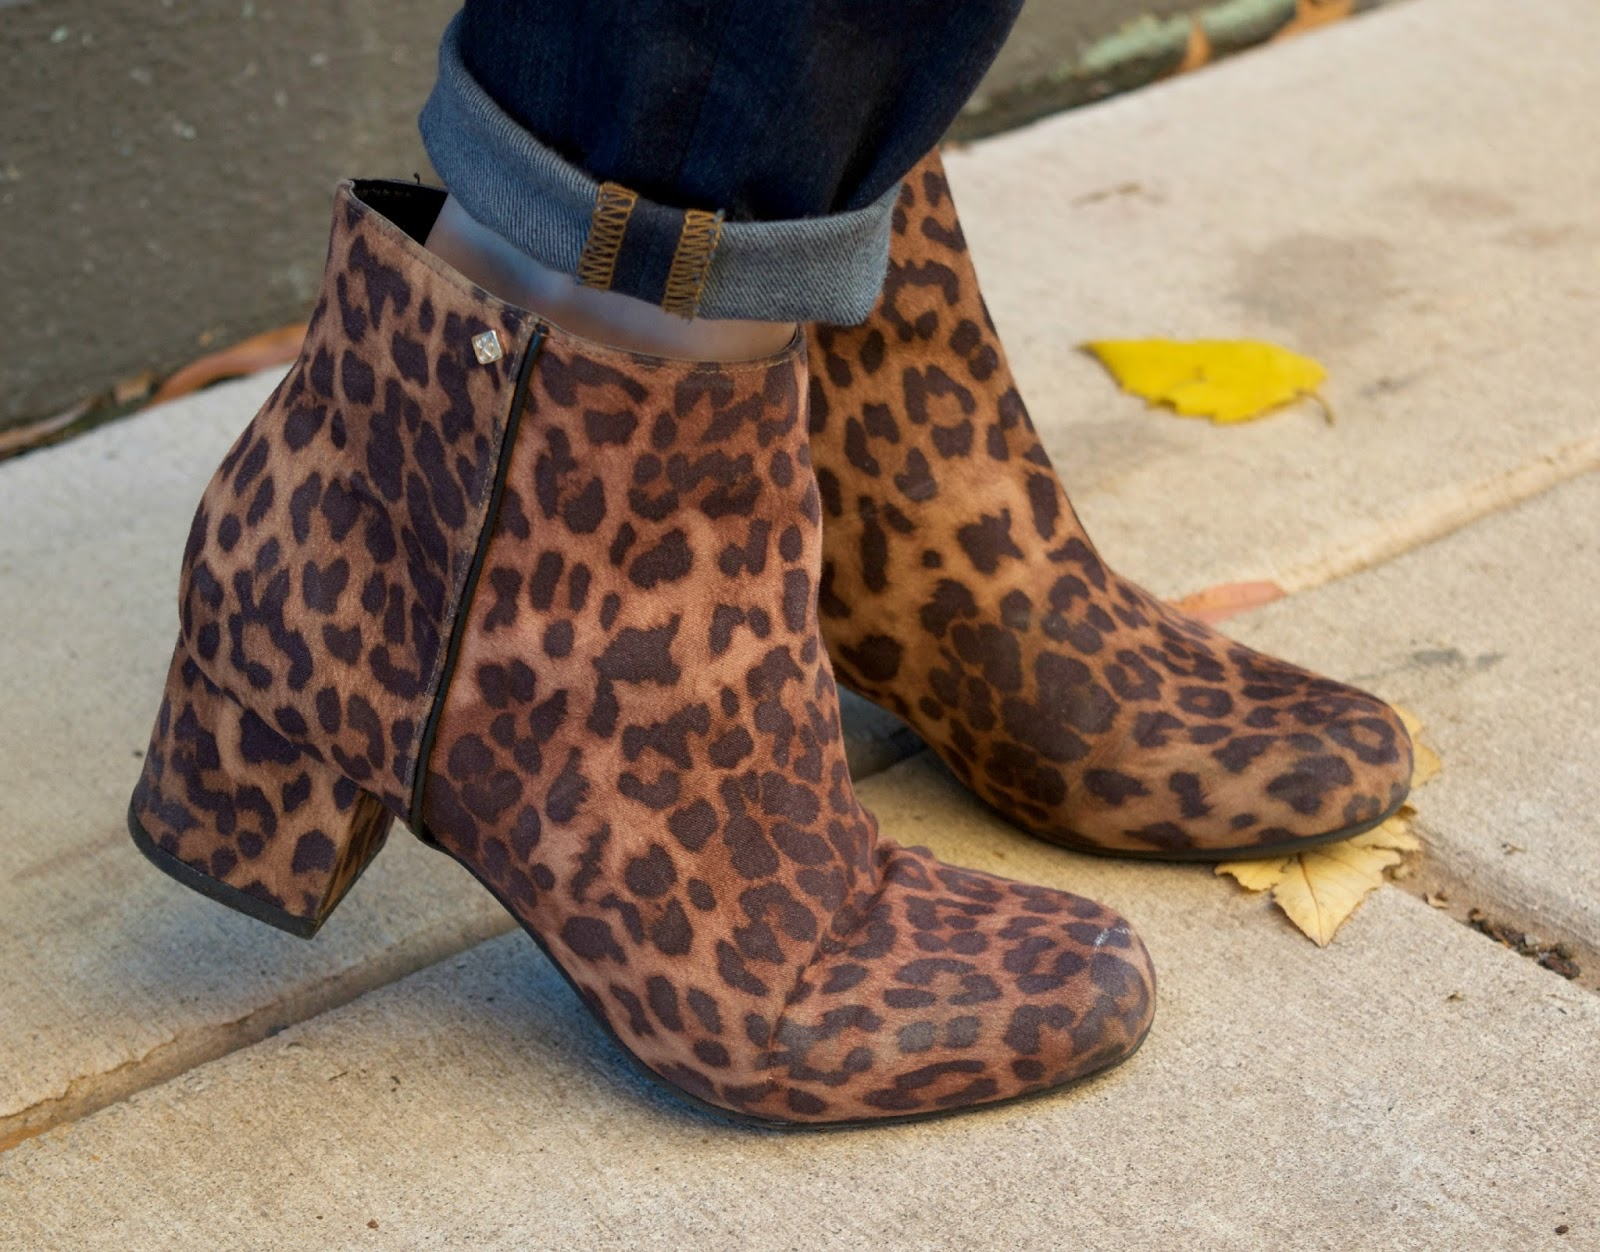 34161e4fee2f Sam & Libby leopard booties - target leopard booties - leopard print shoes  - cheetah print ...